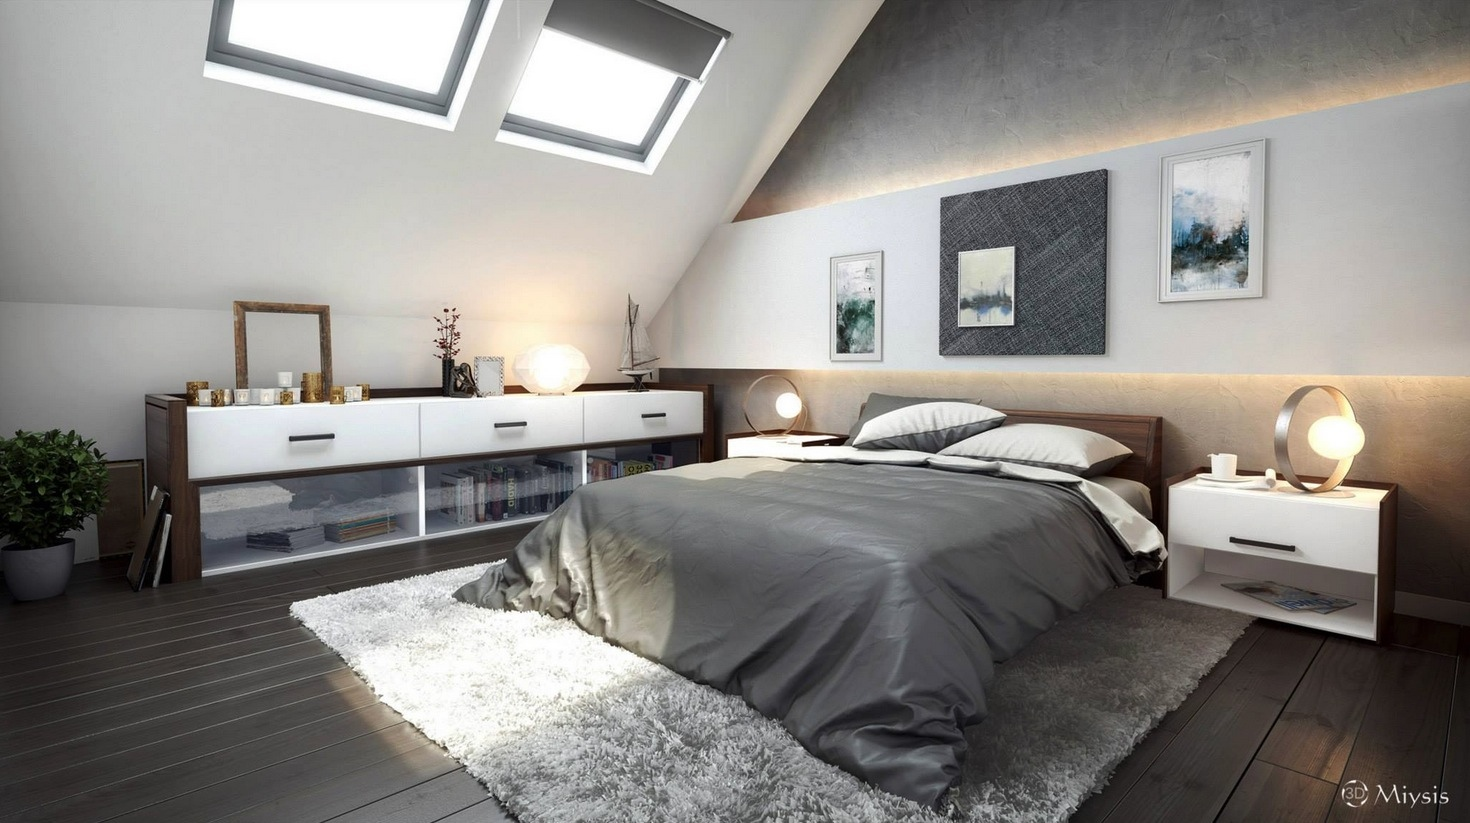 attic bedroom ideas - Ideas For Attic Bedrooms